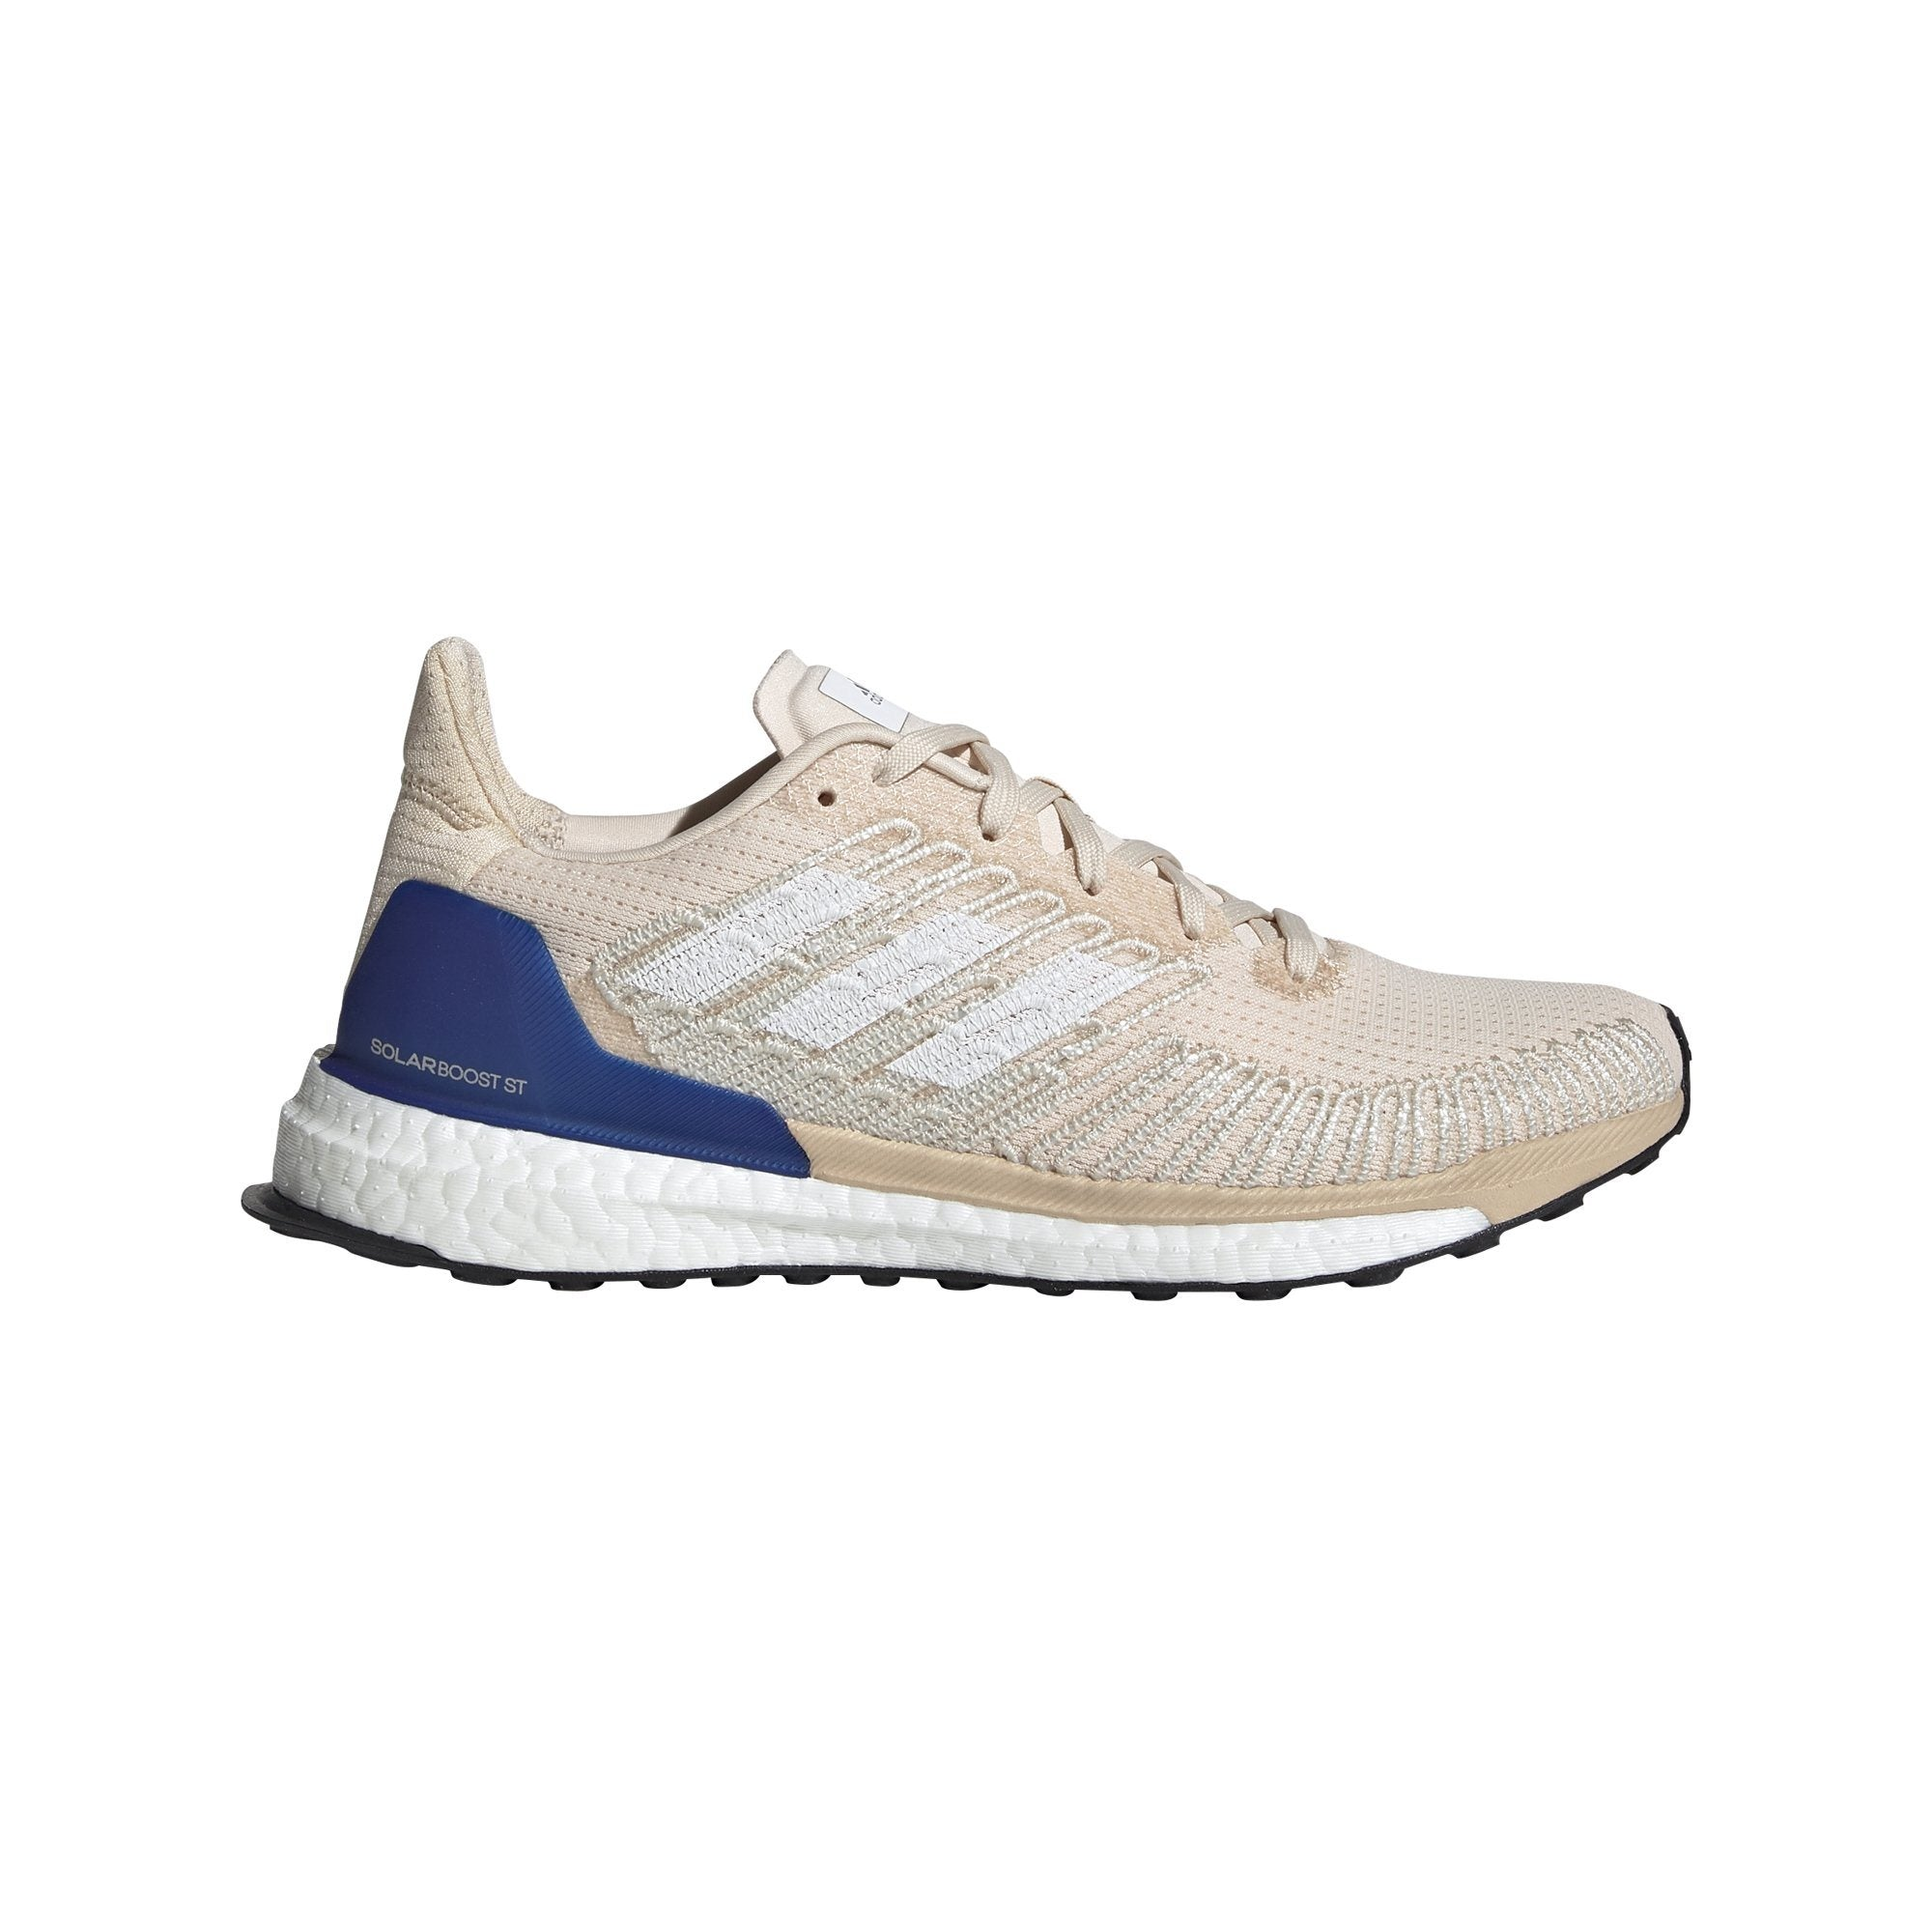 Adidas Womens Solarboost ST 19 Shoes - linen/ftwr white/collegiate royal SP-FOOTWEAR-WOMENS Adidas